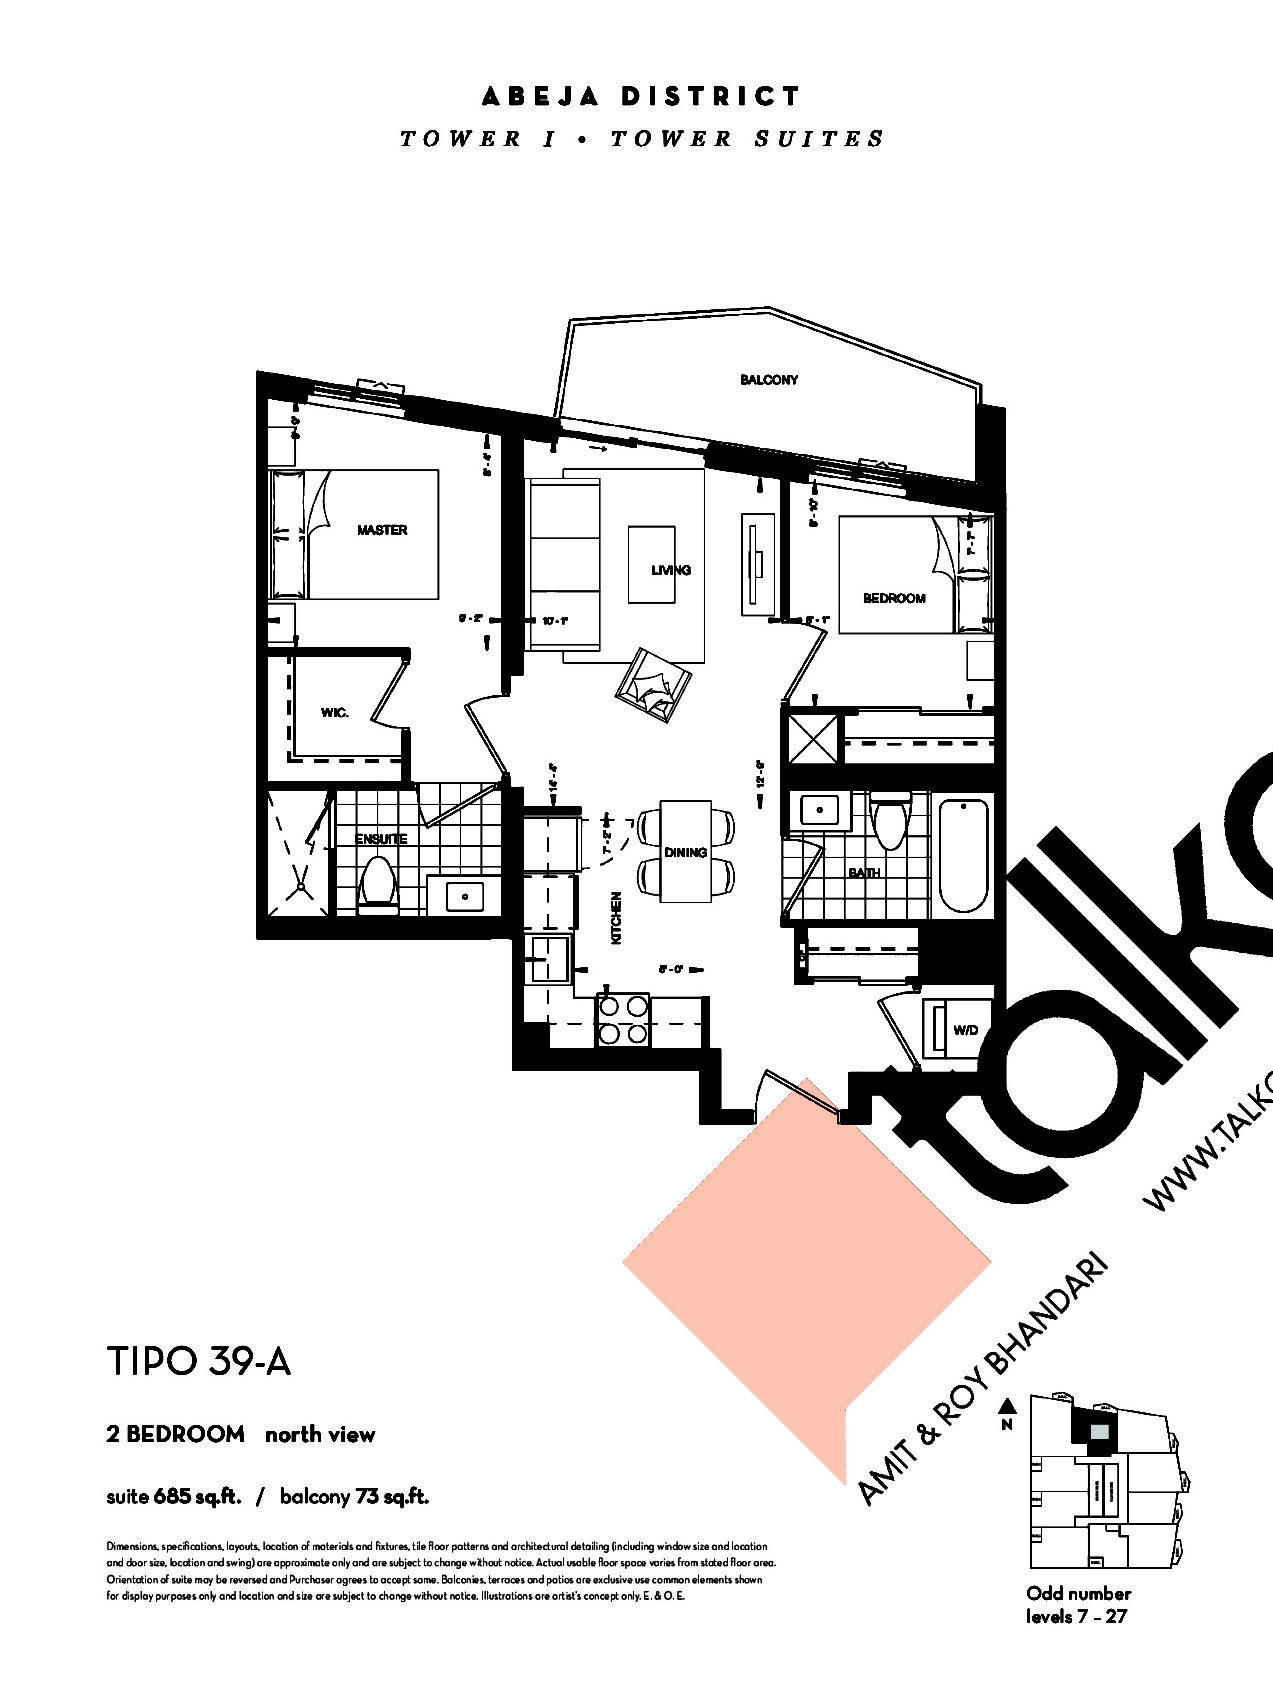 TIPO 39-A (Tower) Floor Plan at Abeja District Condos - 685 sq.ft